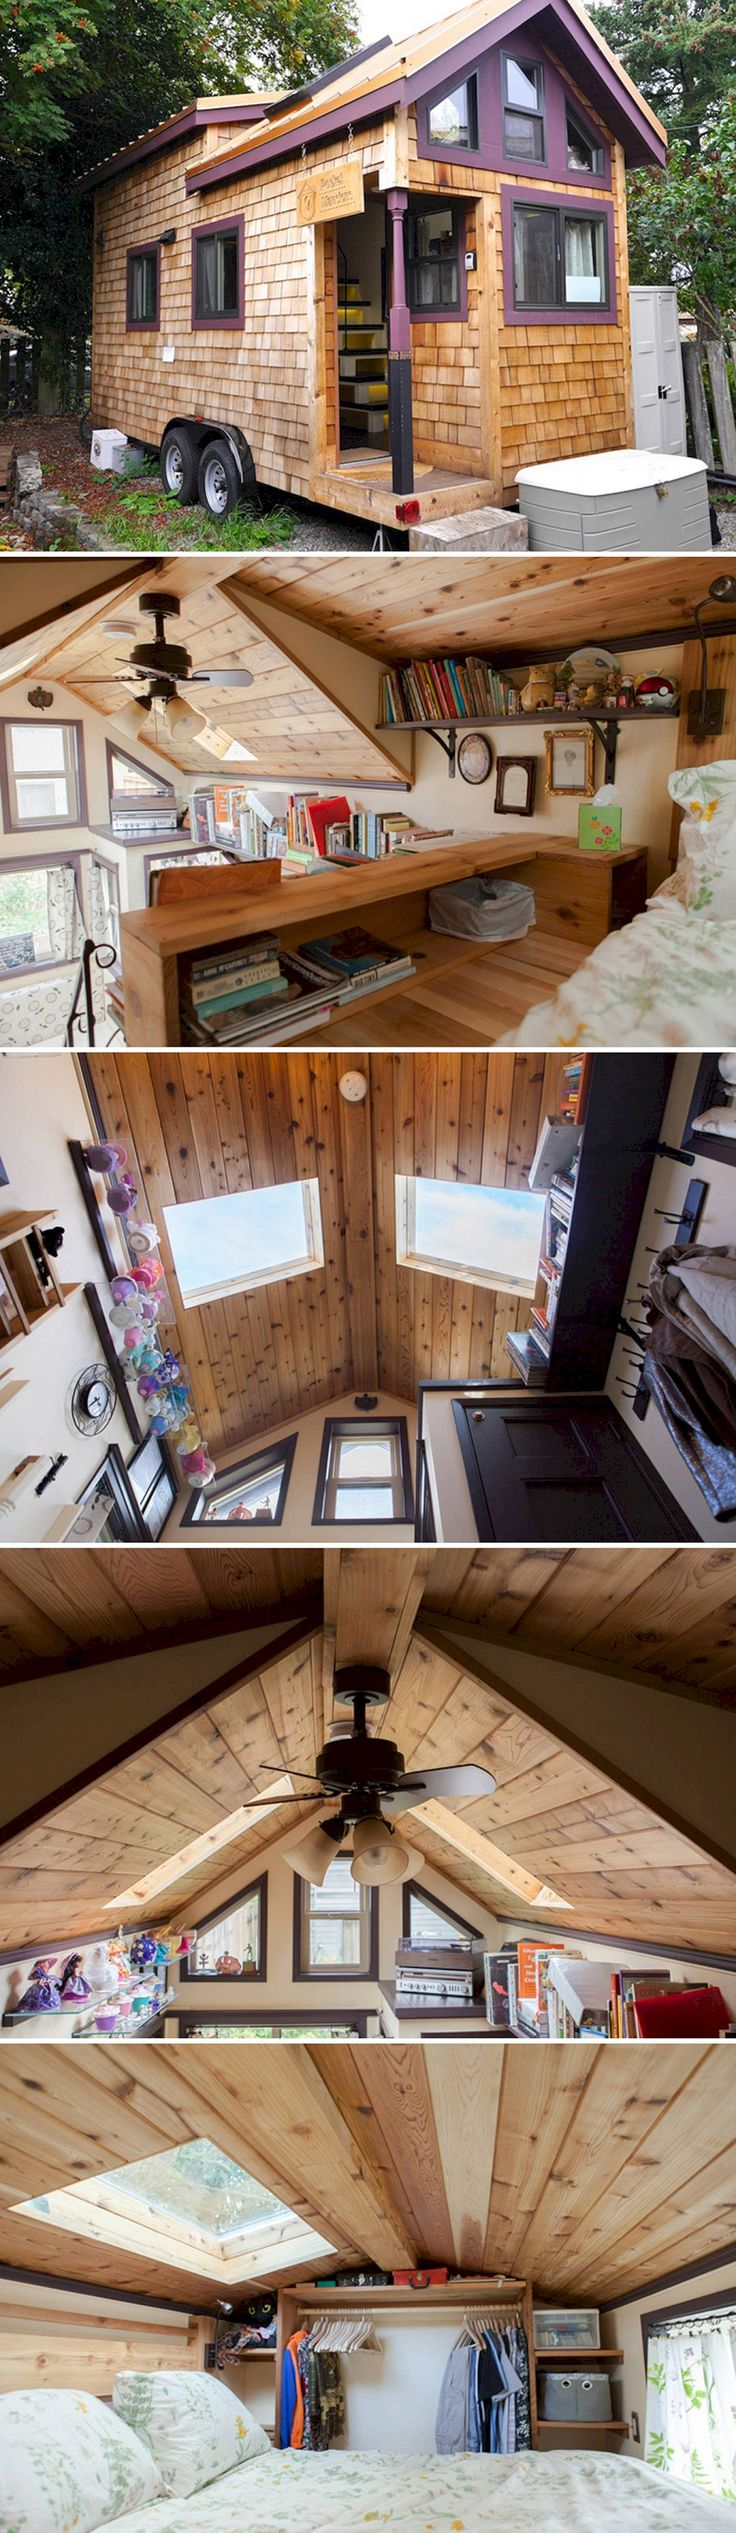 The Best 70 Marvelous Tiny Houses Design That Maximize Style and Function https://decoor.net/70-marvelous-tiny-houses-design-that-maximize-style-and-function-6/